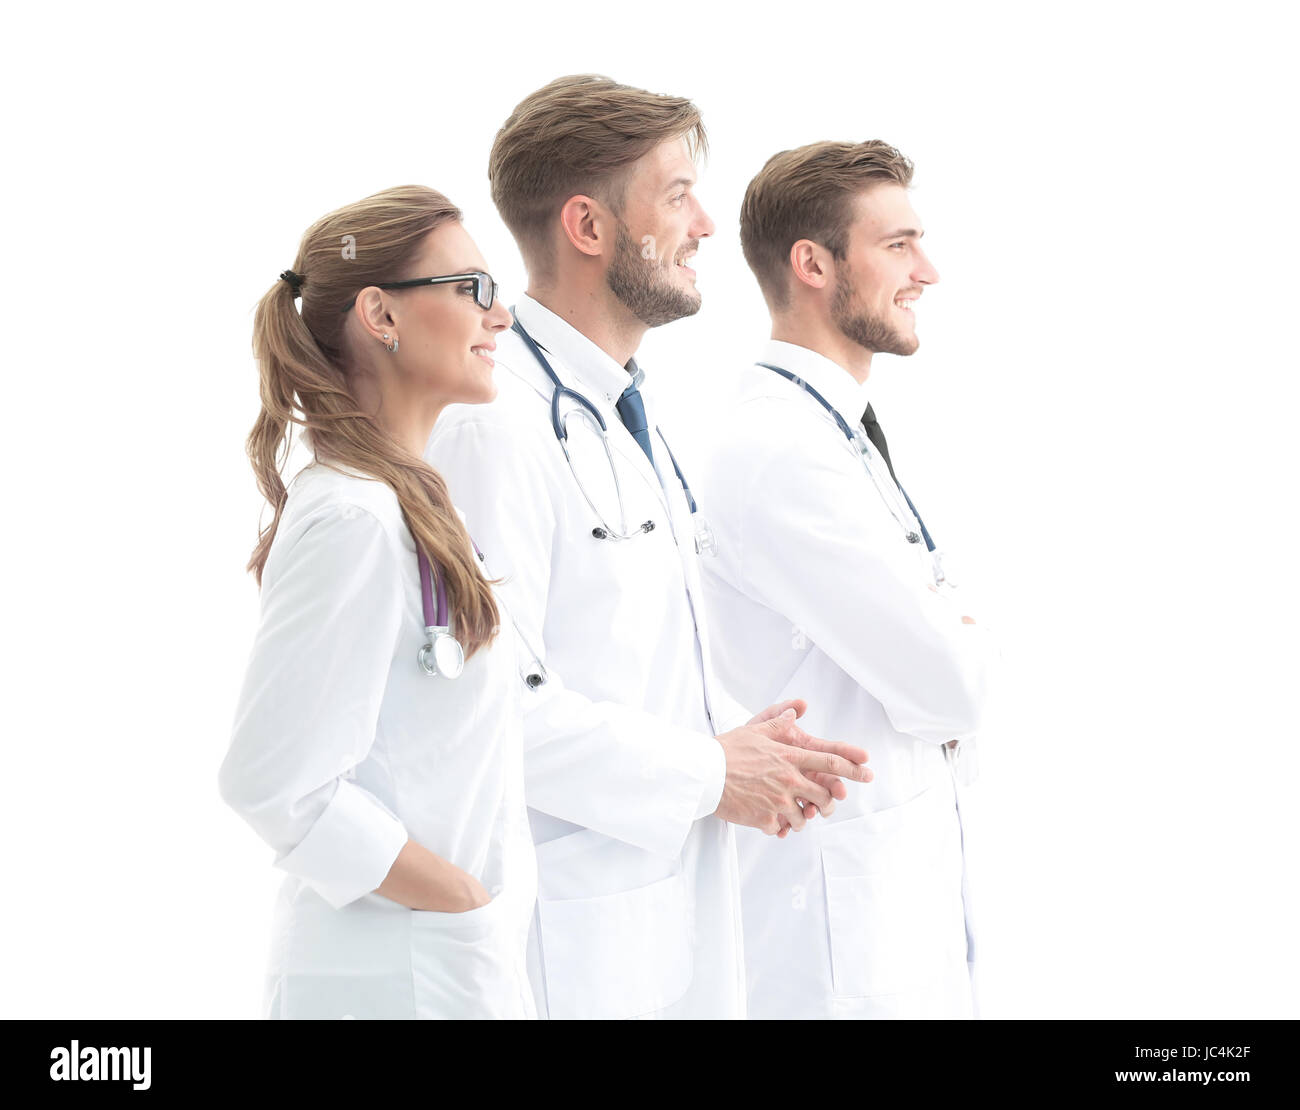 Happy doctors in formalwear looking to the side. Stock Photo